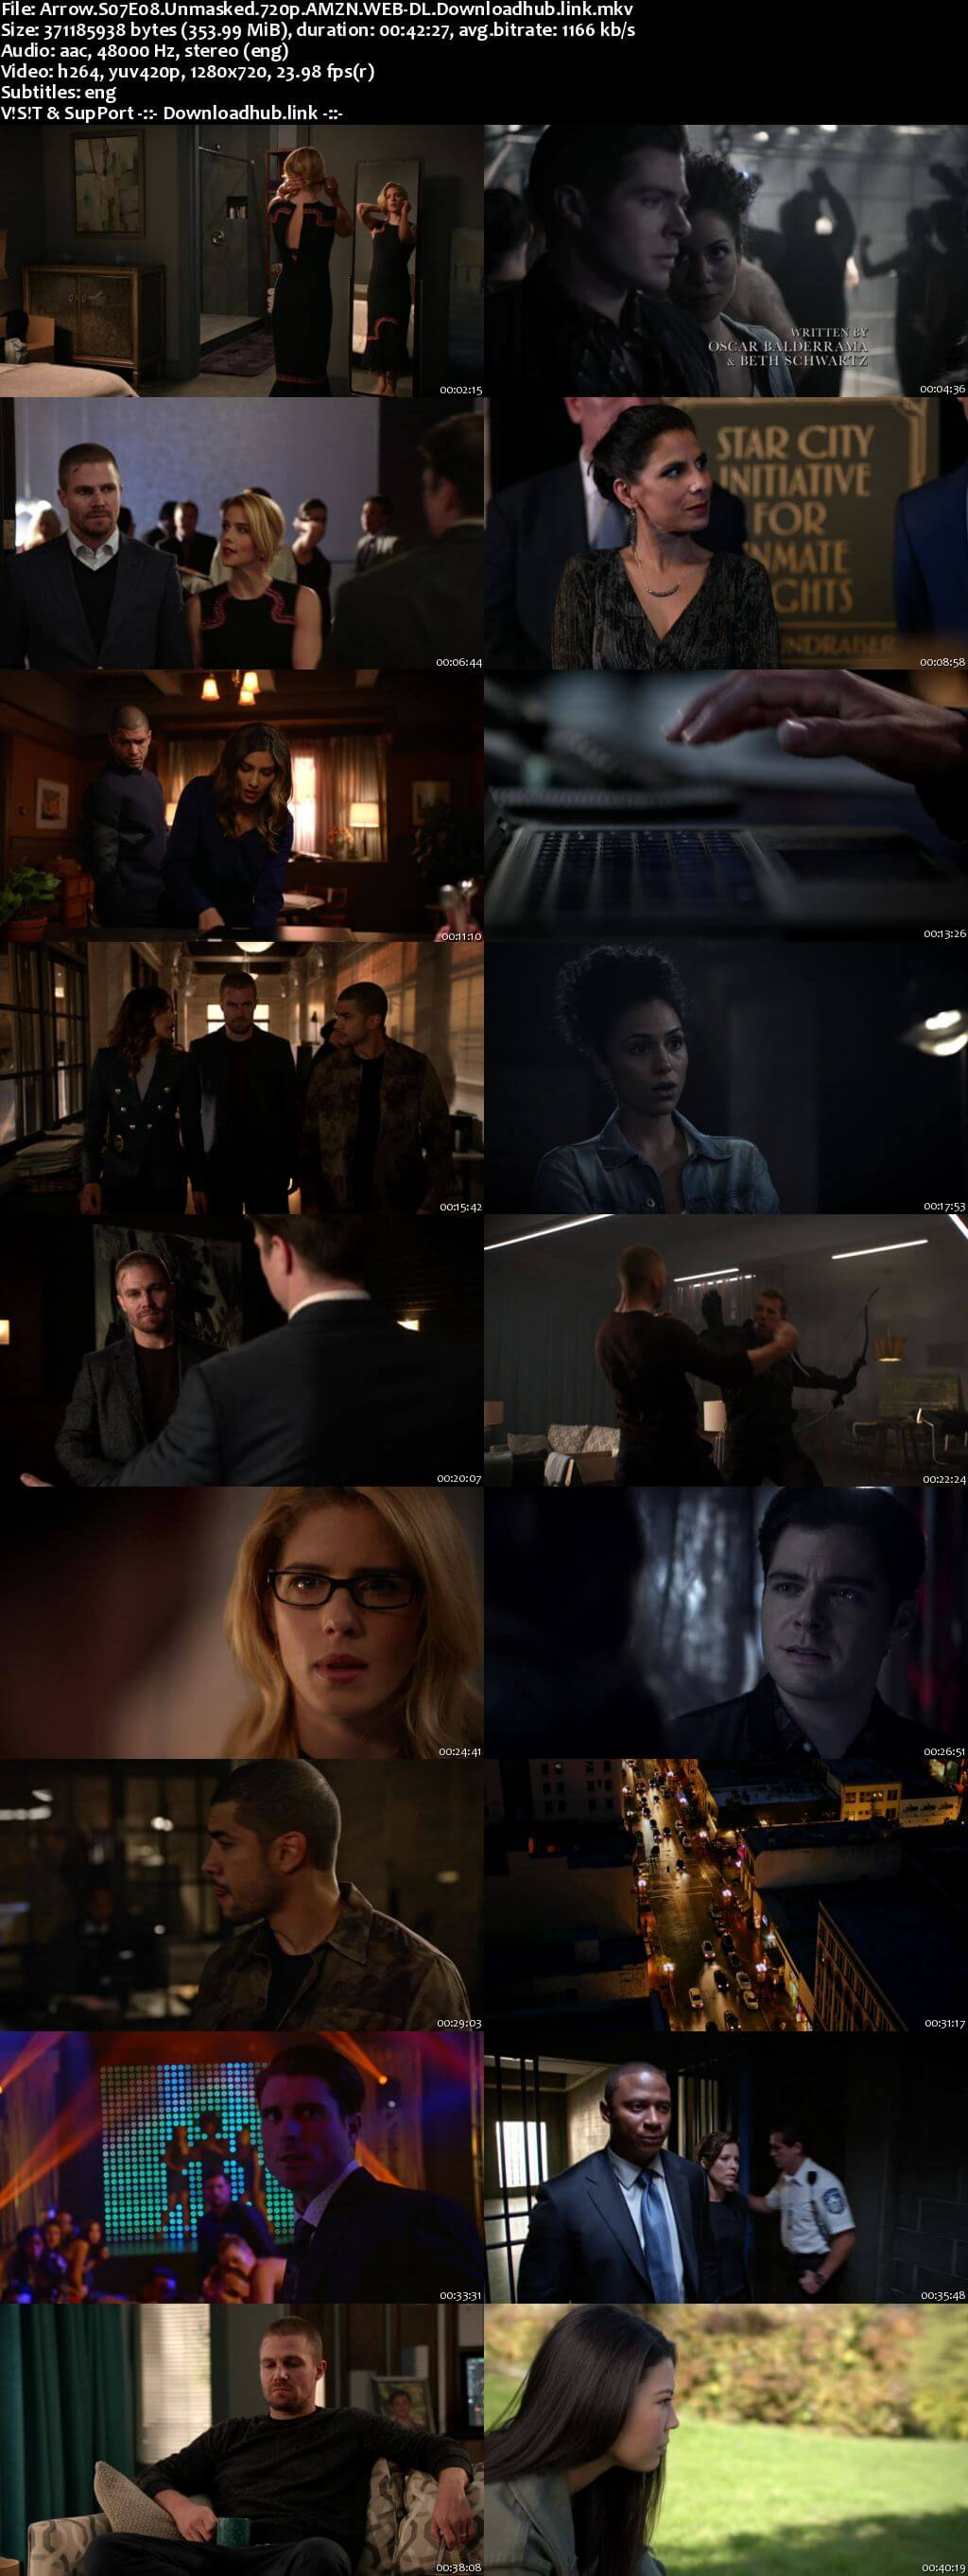 Arrow S07E08 350MB AMZN Web-DL 720p ESubs